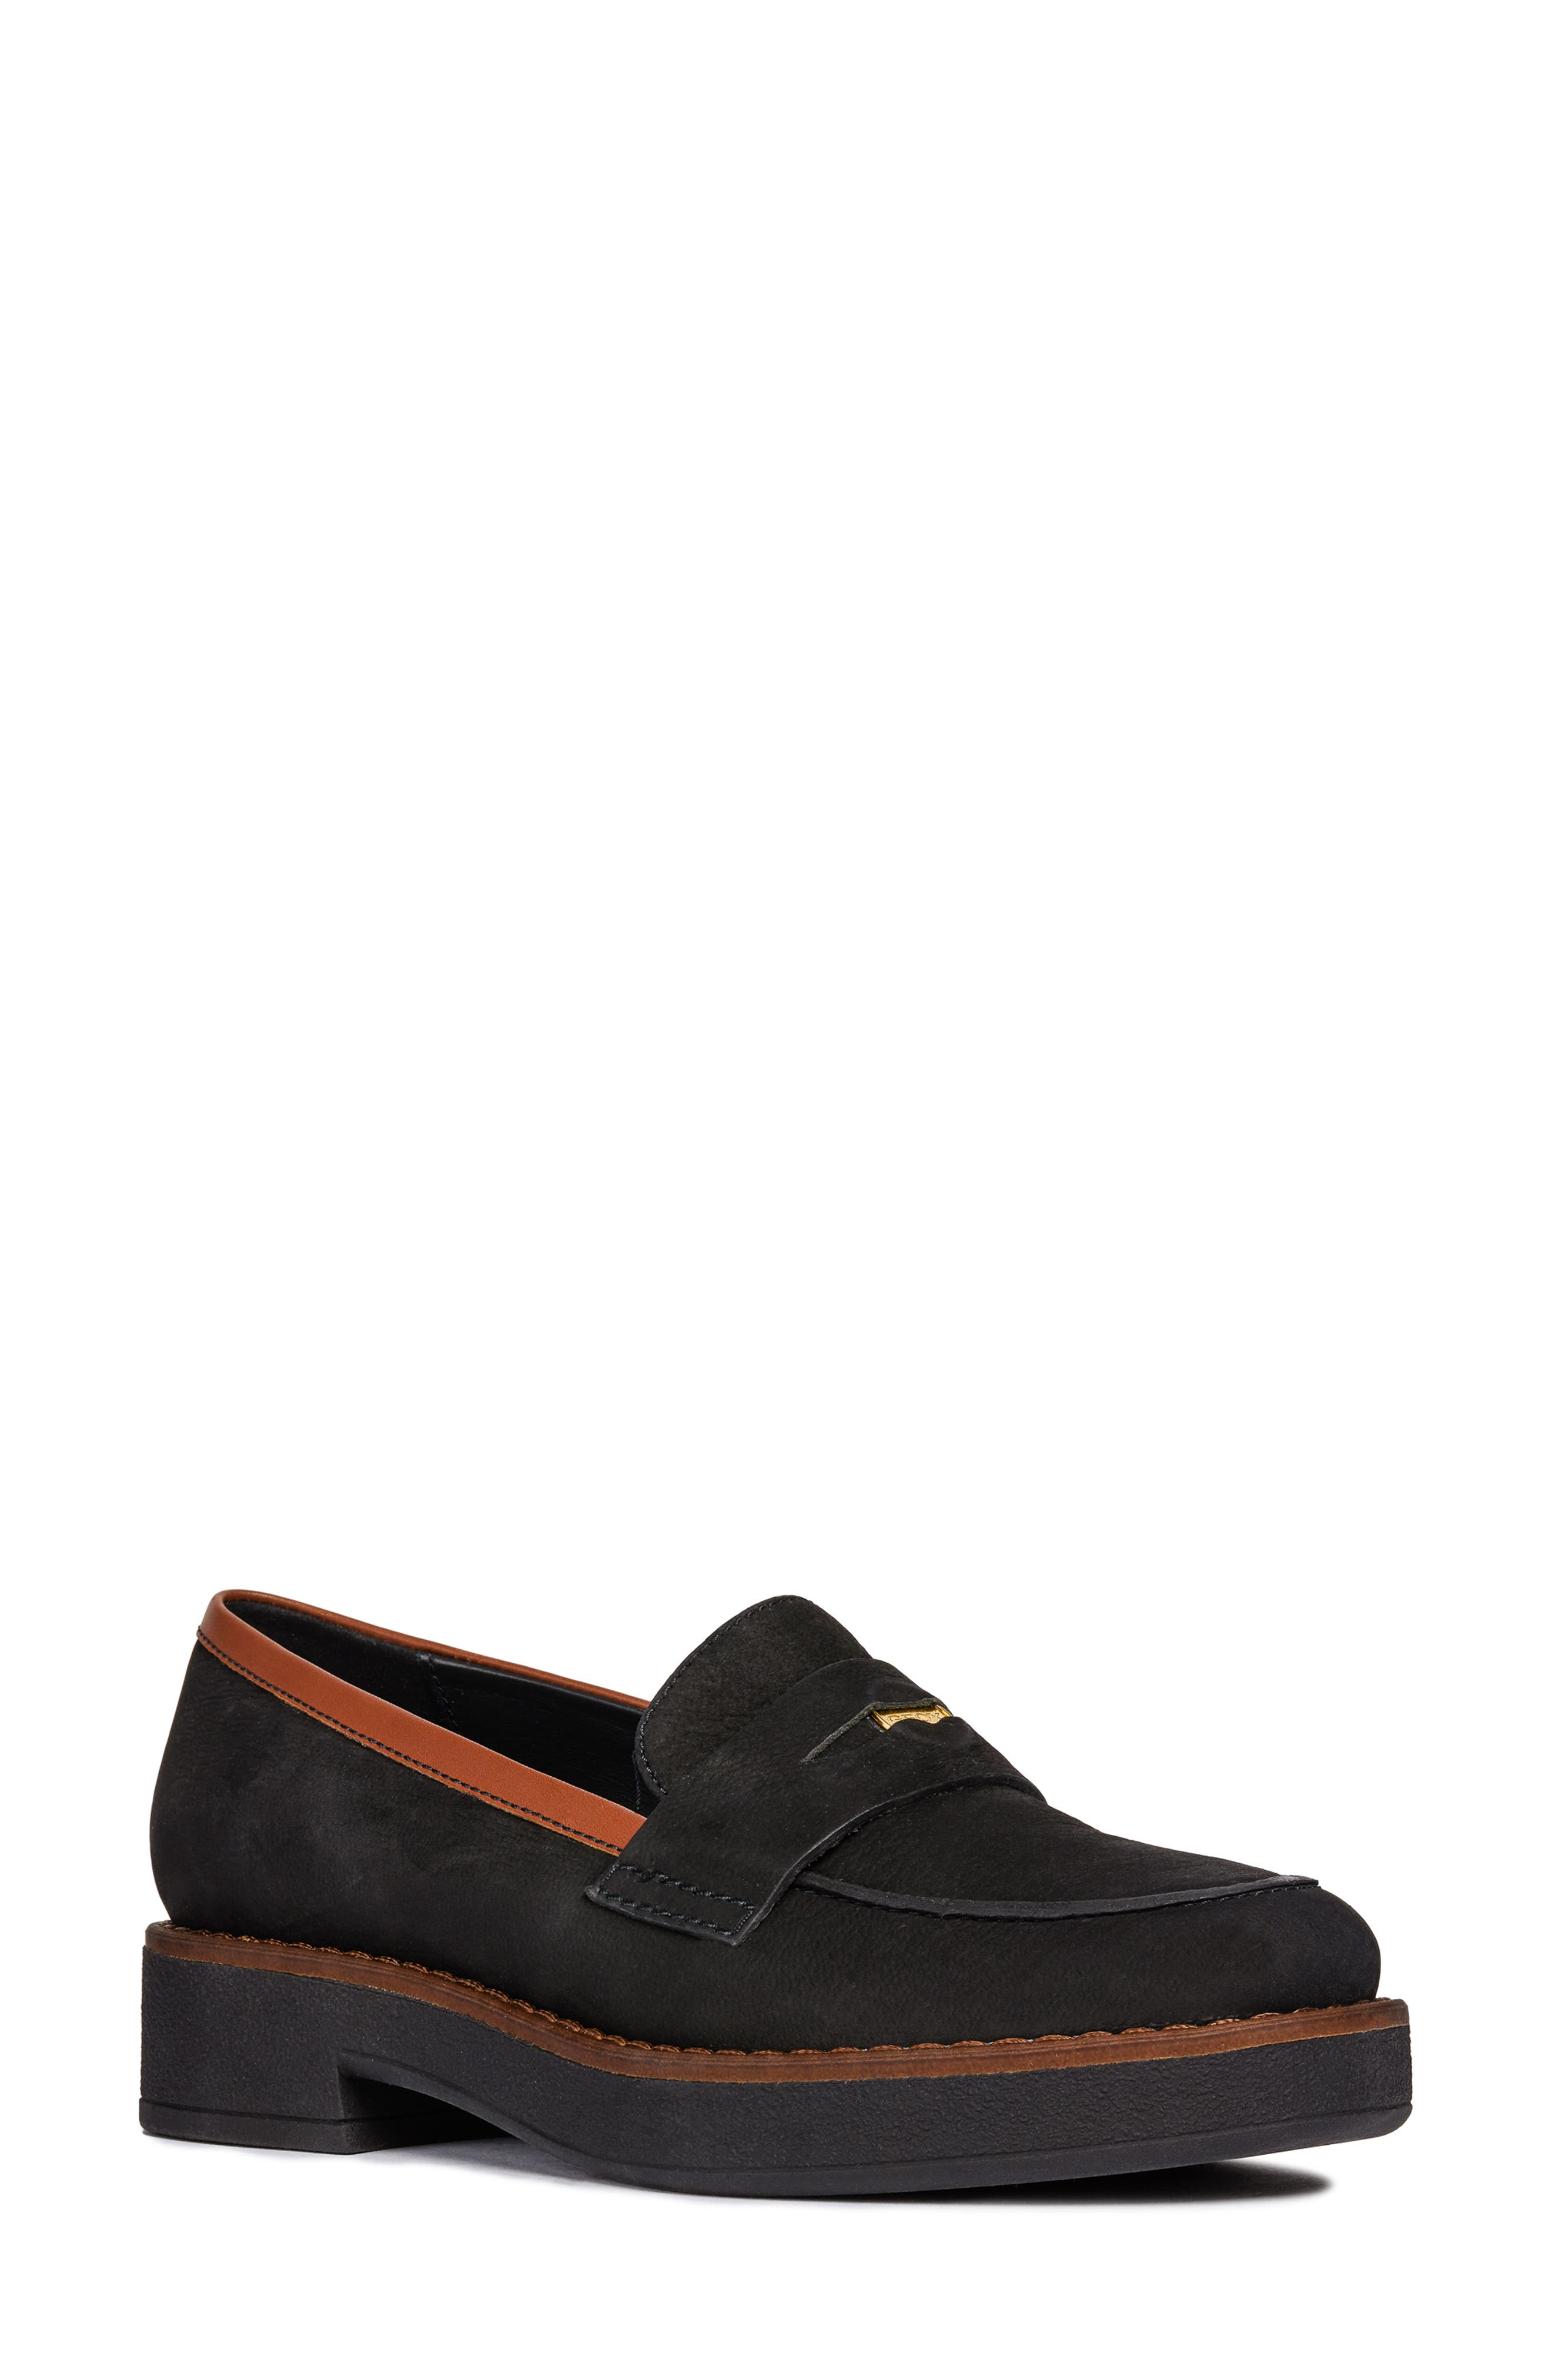 Adrya Loafer,                             Main thumbnail 1, color,                             BLACK/ BROWN NUBUCK LEATHER